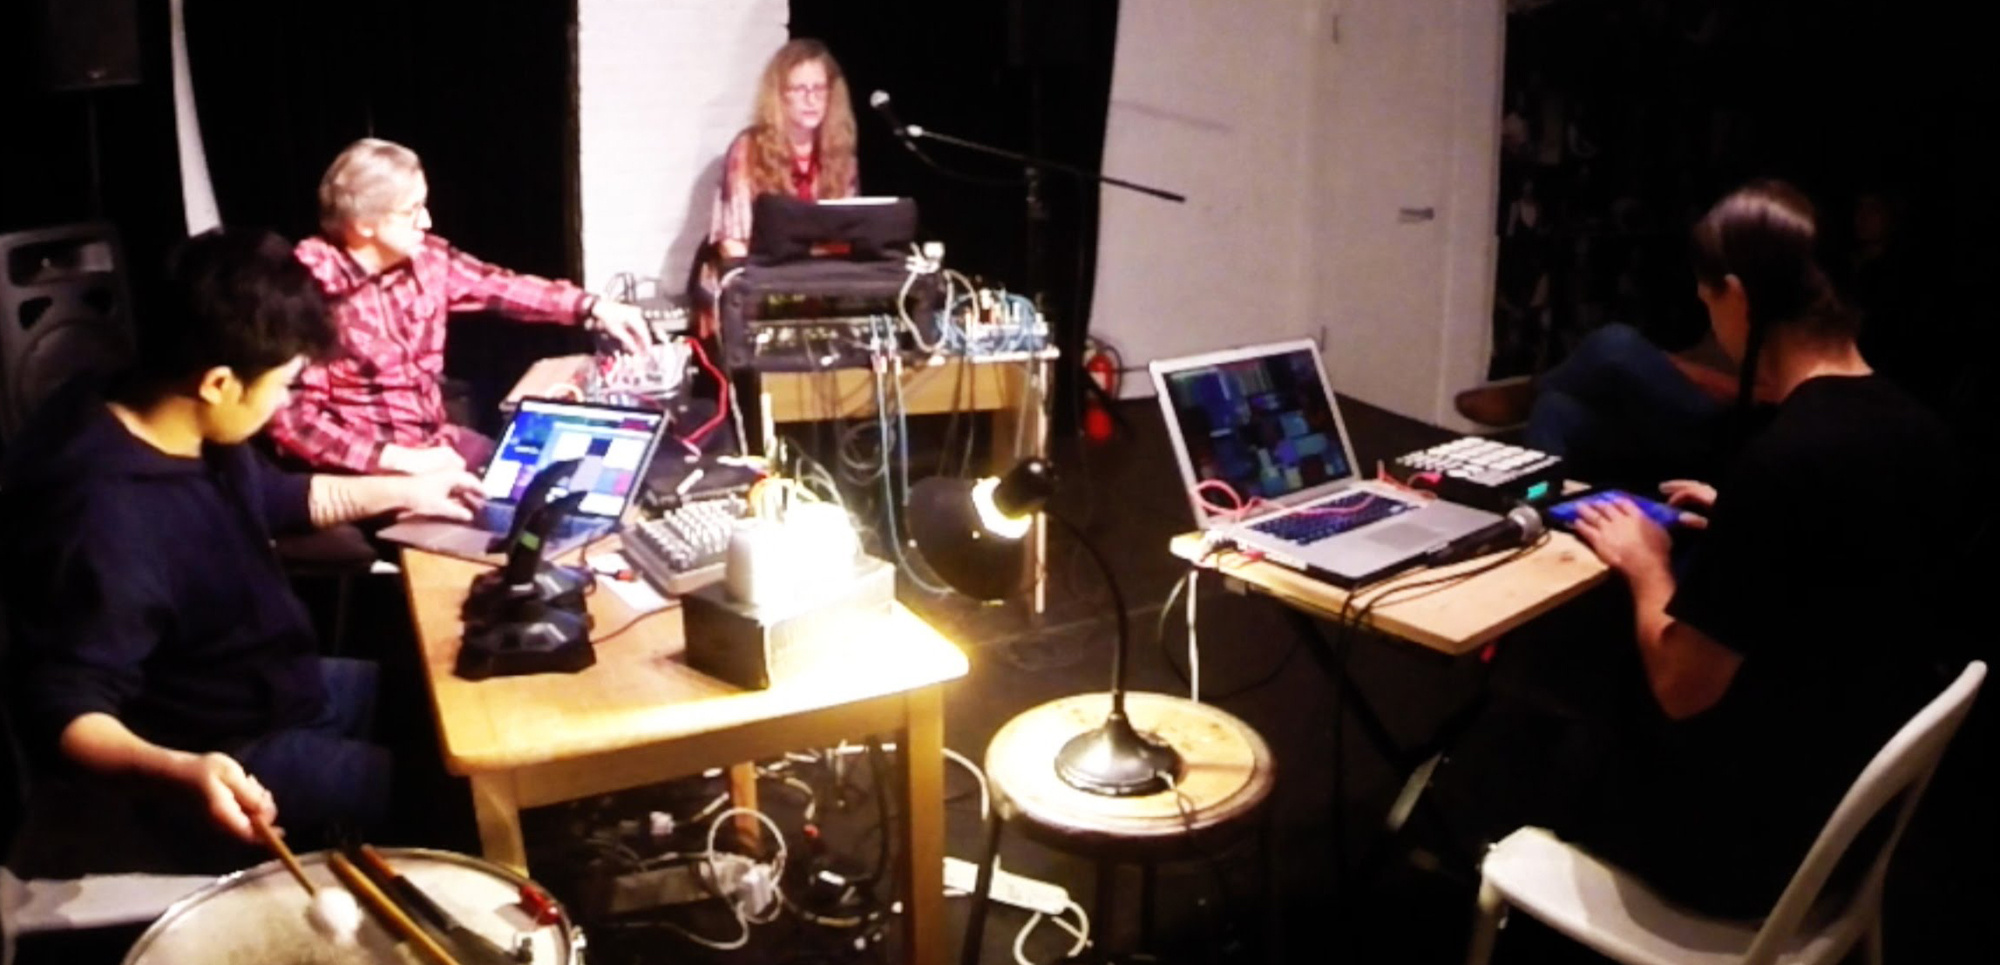 A performance during Chuck Bettis's residency at The Stone in December 2015 featuring (from left to right): Levy Lorenzo (electronics, percussion, and tea pot); Hans Tammen (Buchla, etc.); Dafna Naphtali (electronics and voice); and Chuck Bettis (electronics).